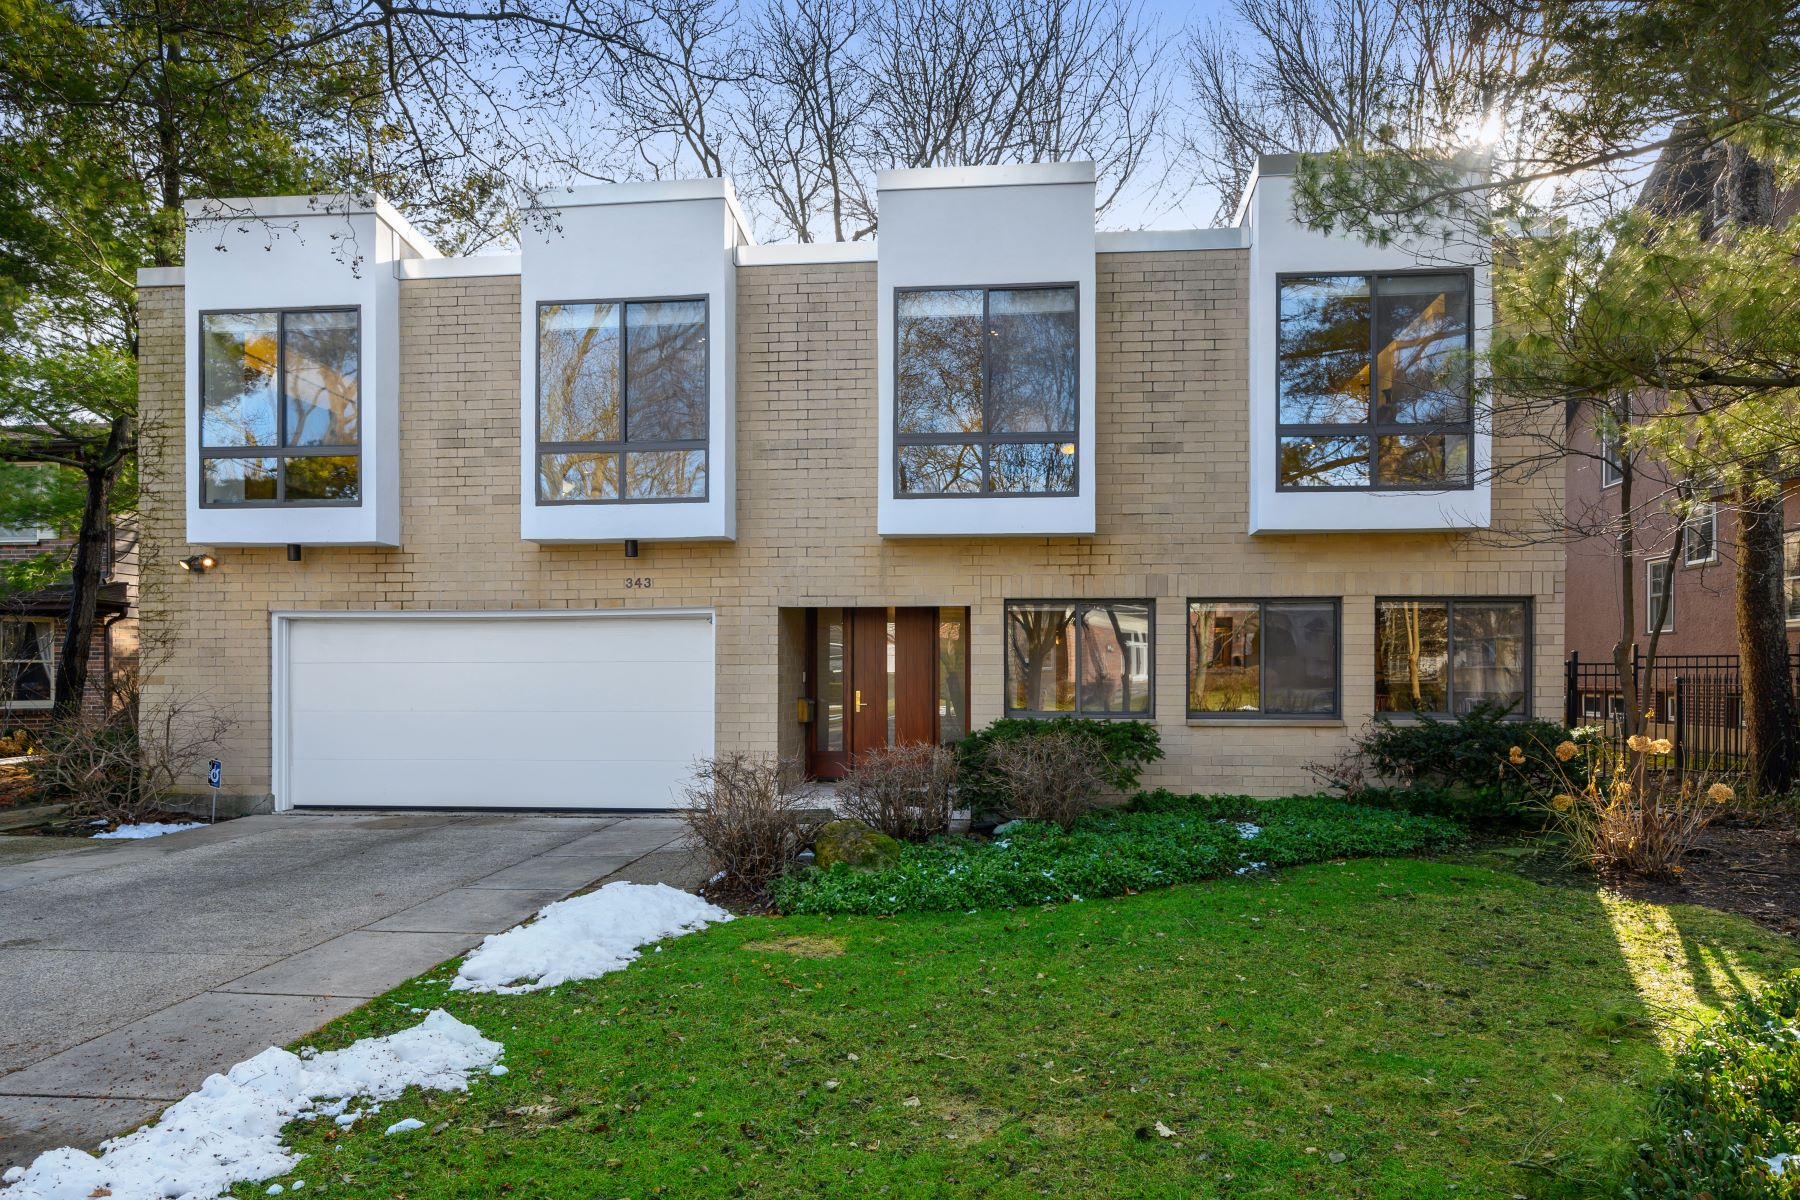 Single Family Homes for Active at Bright Contemporary Design 343 Central Avenue Wilmette, Illinois 60091 United States